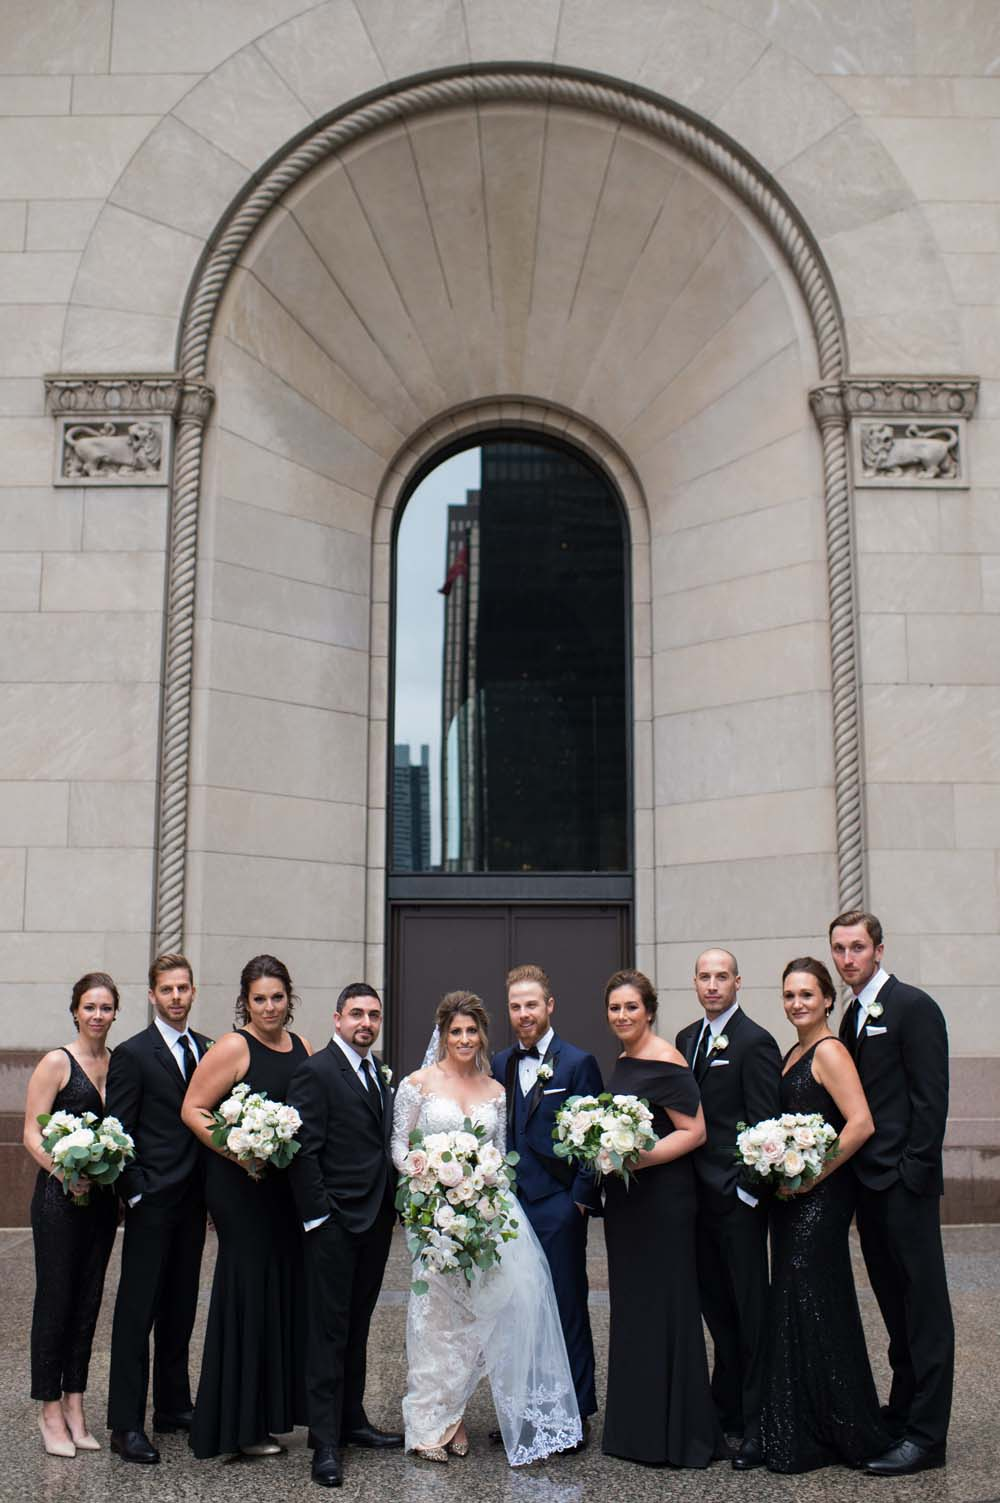 A Classic Vintage inspired Wedding at the One King West in Toronto - Bride and Groom with Wedding Party